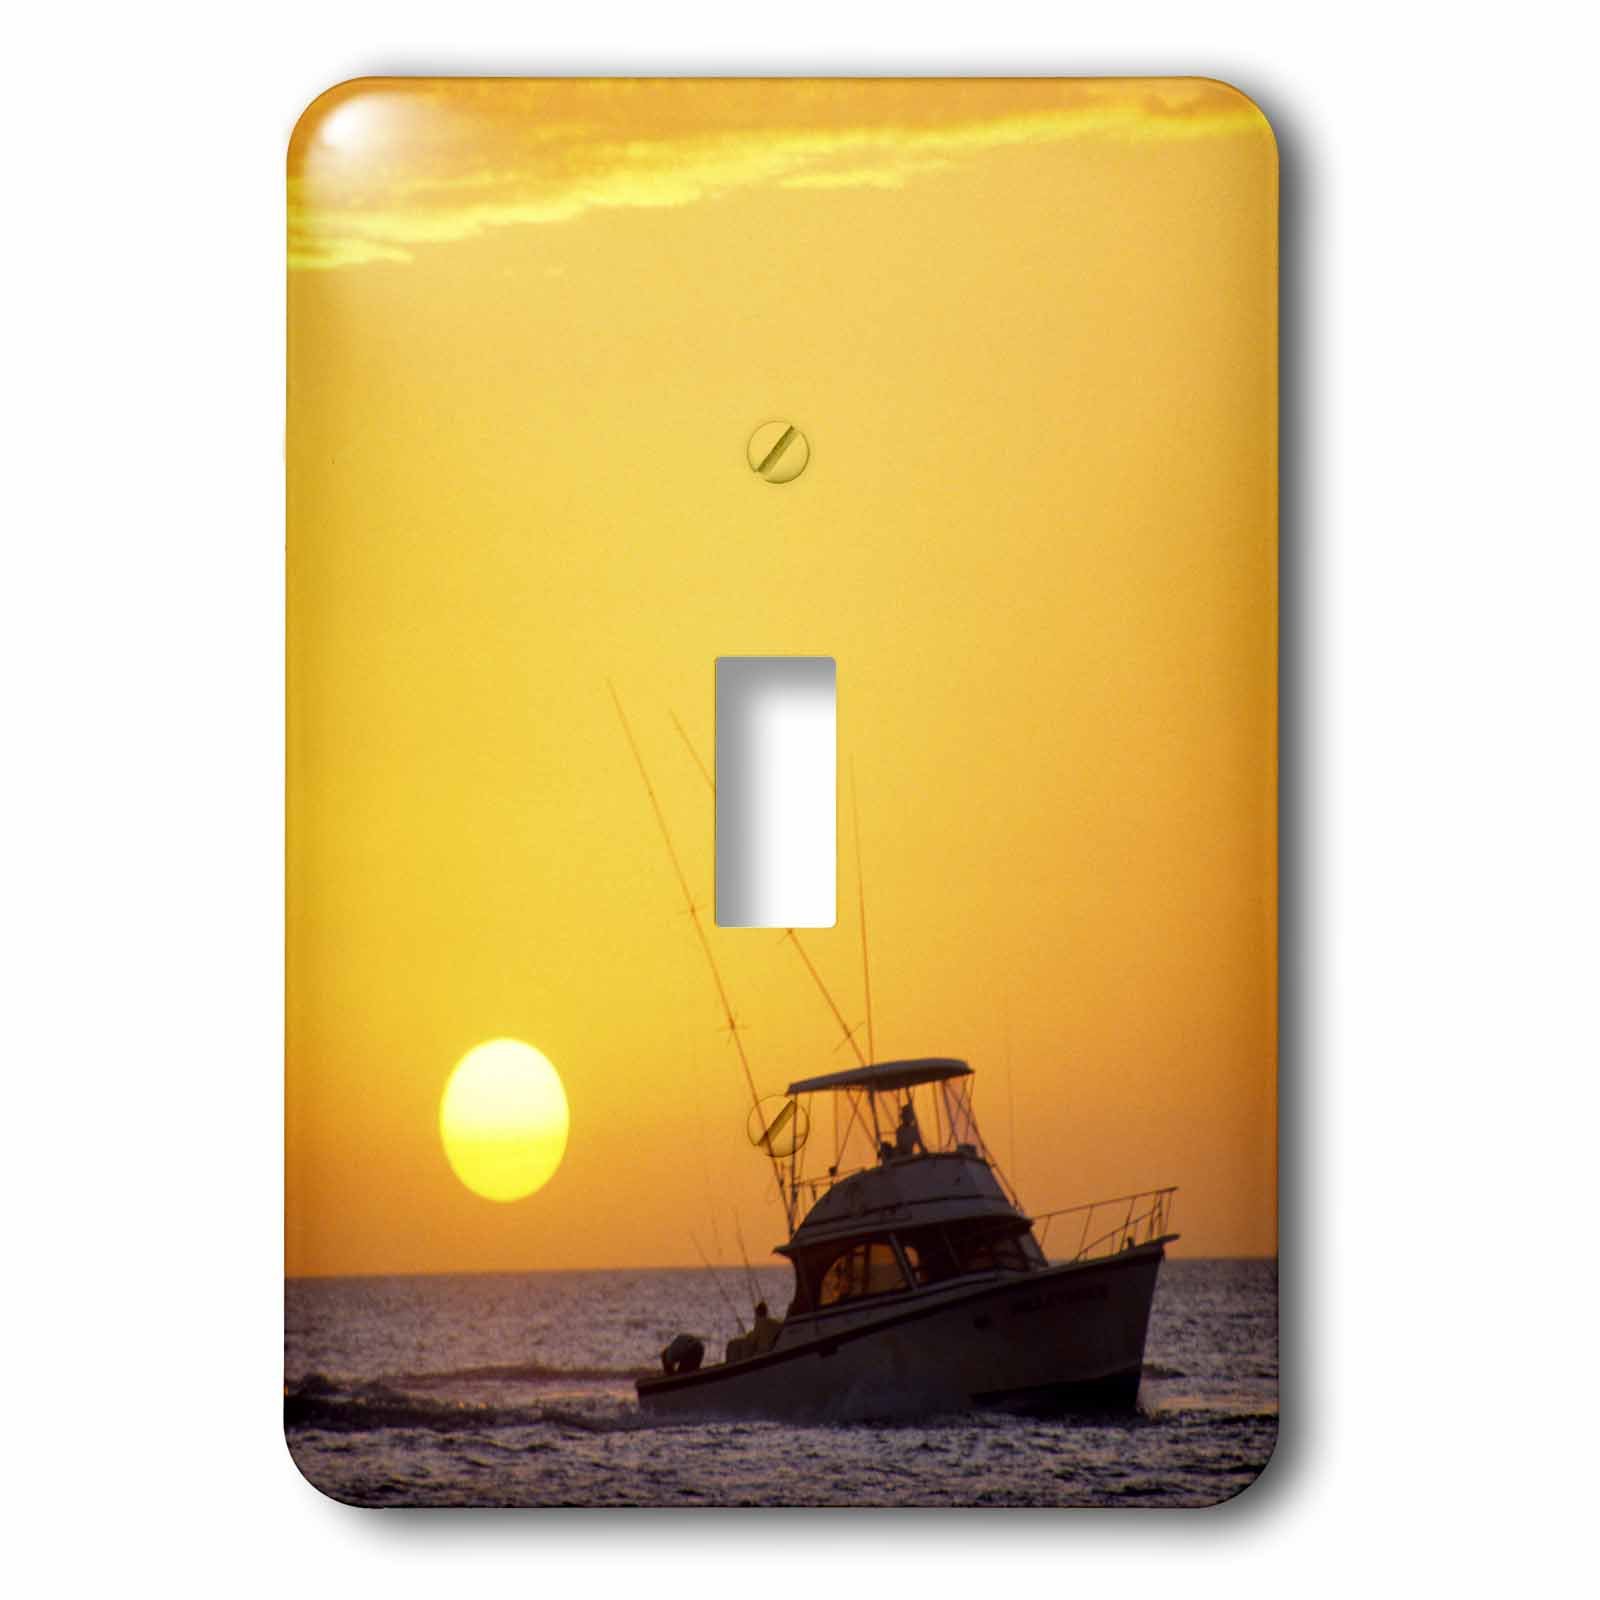 3dRose A fishing boat and sunset in Key West, Florida US10 DFR0107 David R. Frazier, Single Toggle... by 3dRose